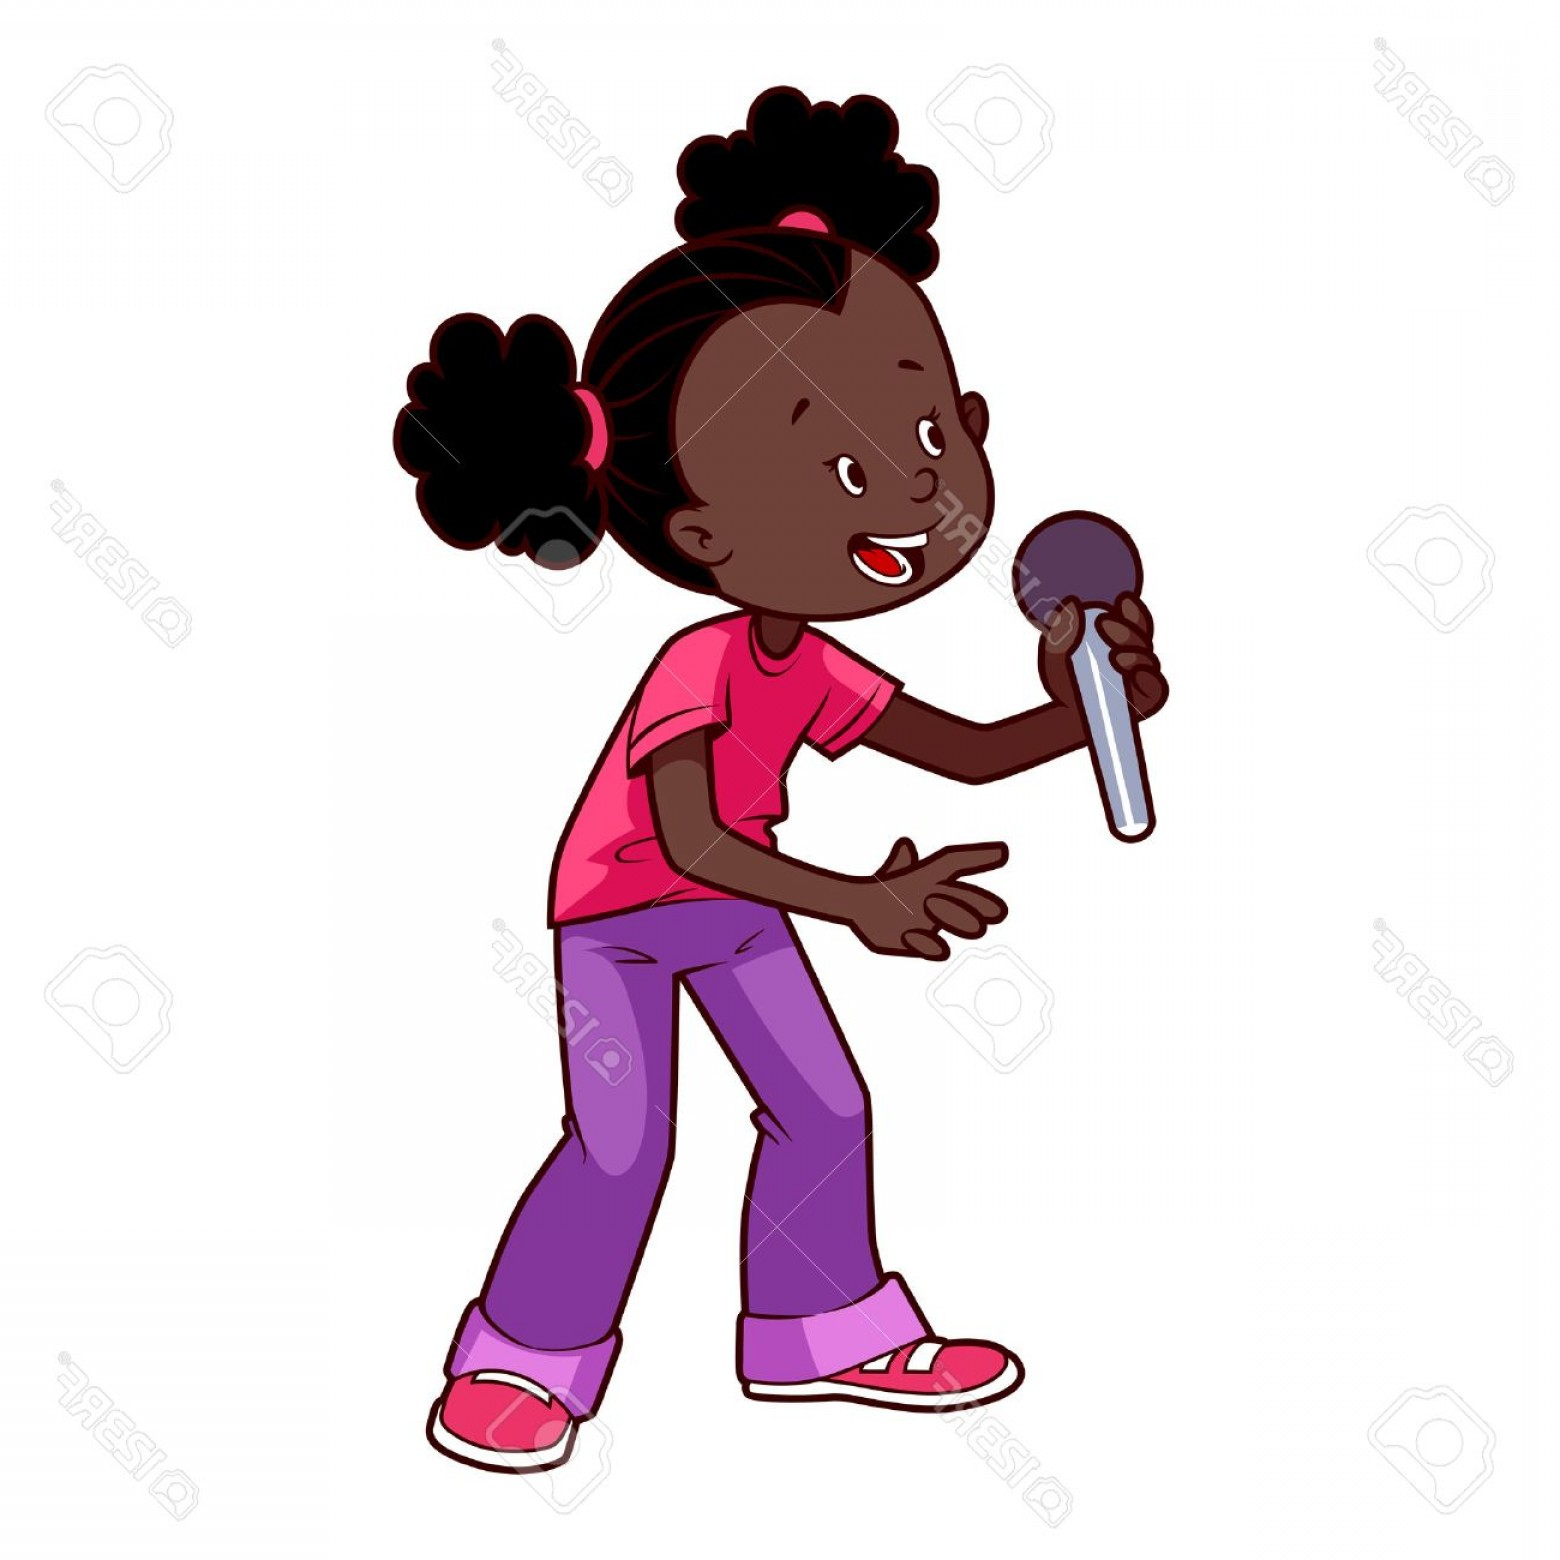 Singing Girls Vector Art: Photostock Vector Cartoon African American Girl Singing With A Microphone Vector Clip Art Illustration On A White Back